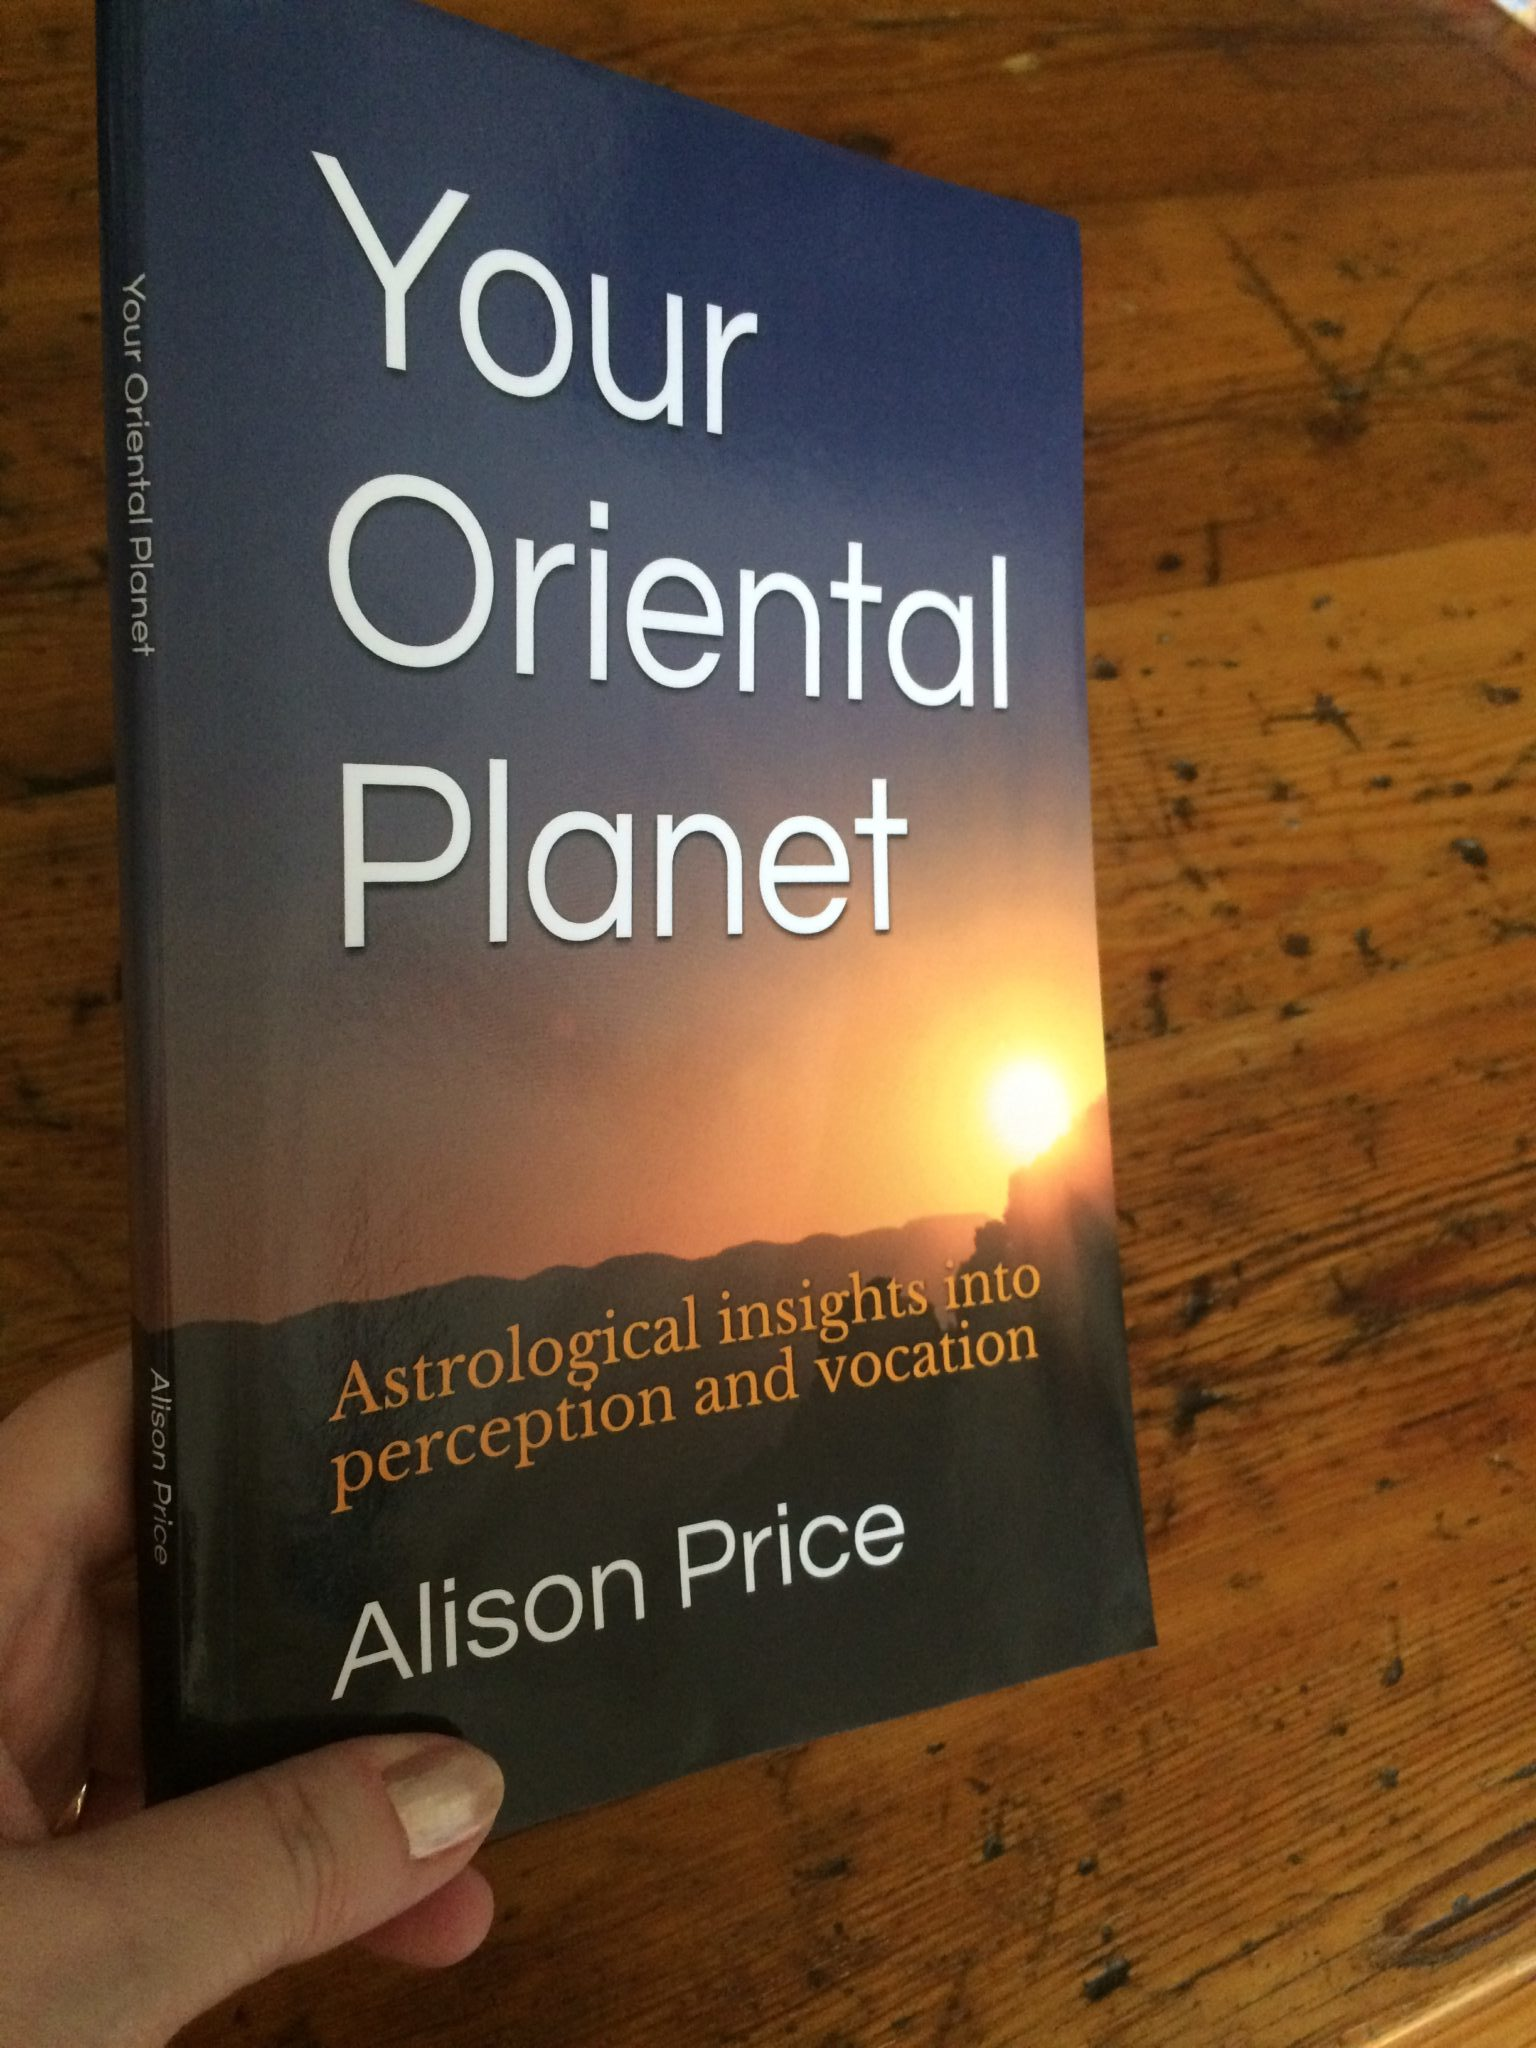 Your Oriental Planet book now available at Amazon